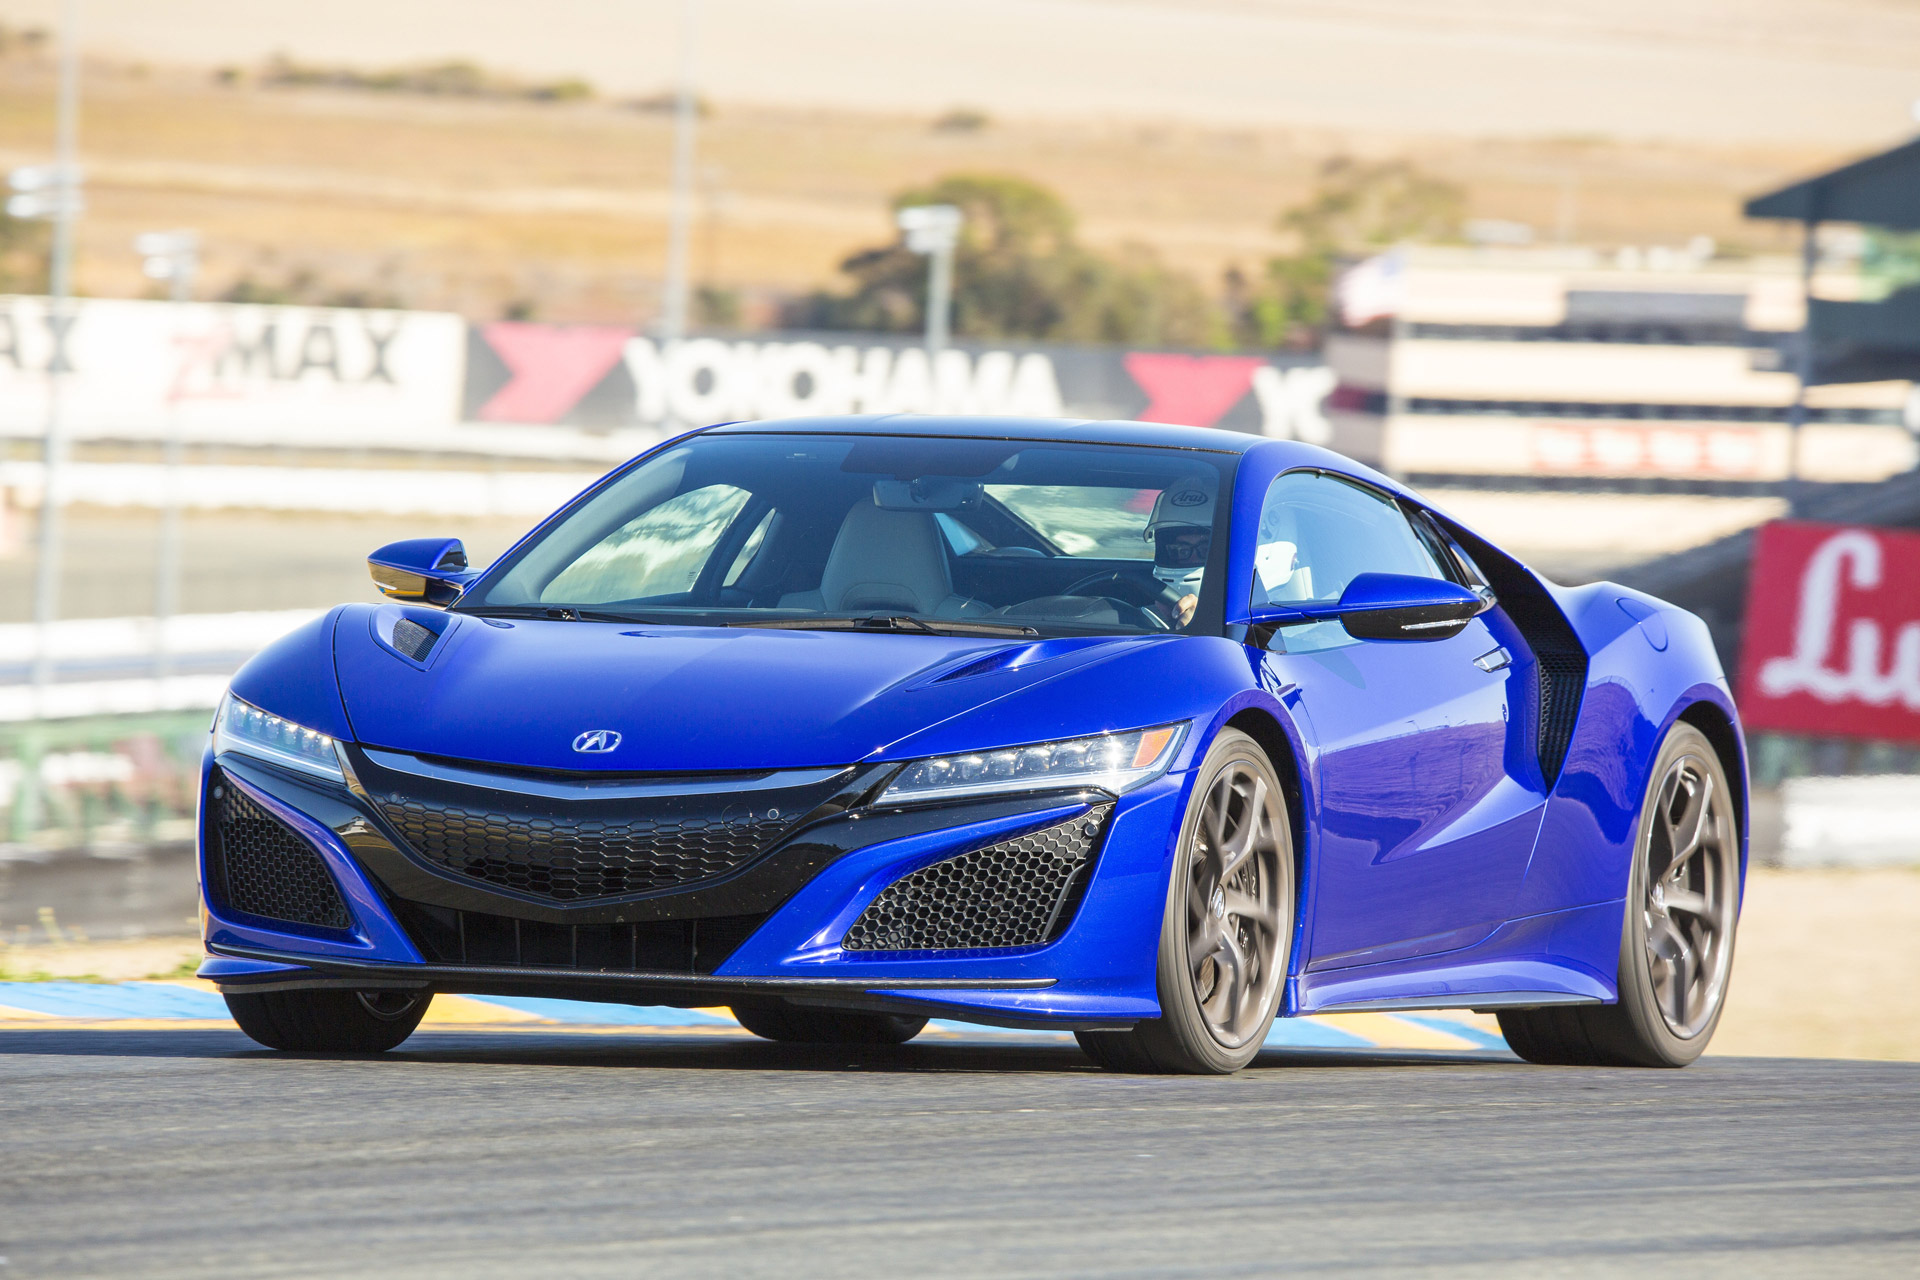 r acura watch sale expo used type youtube nsx for jdm